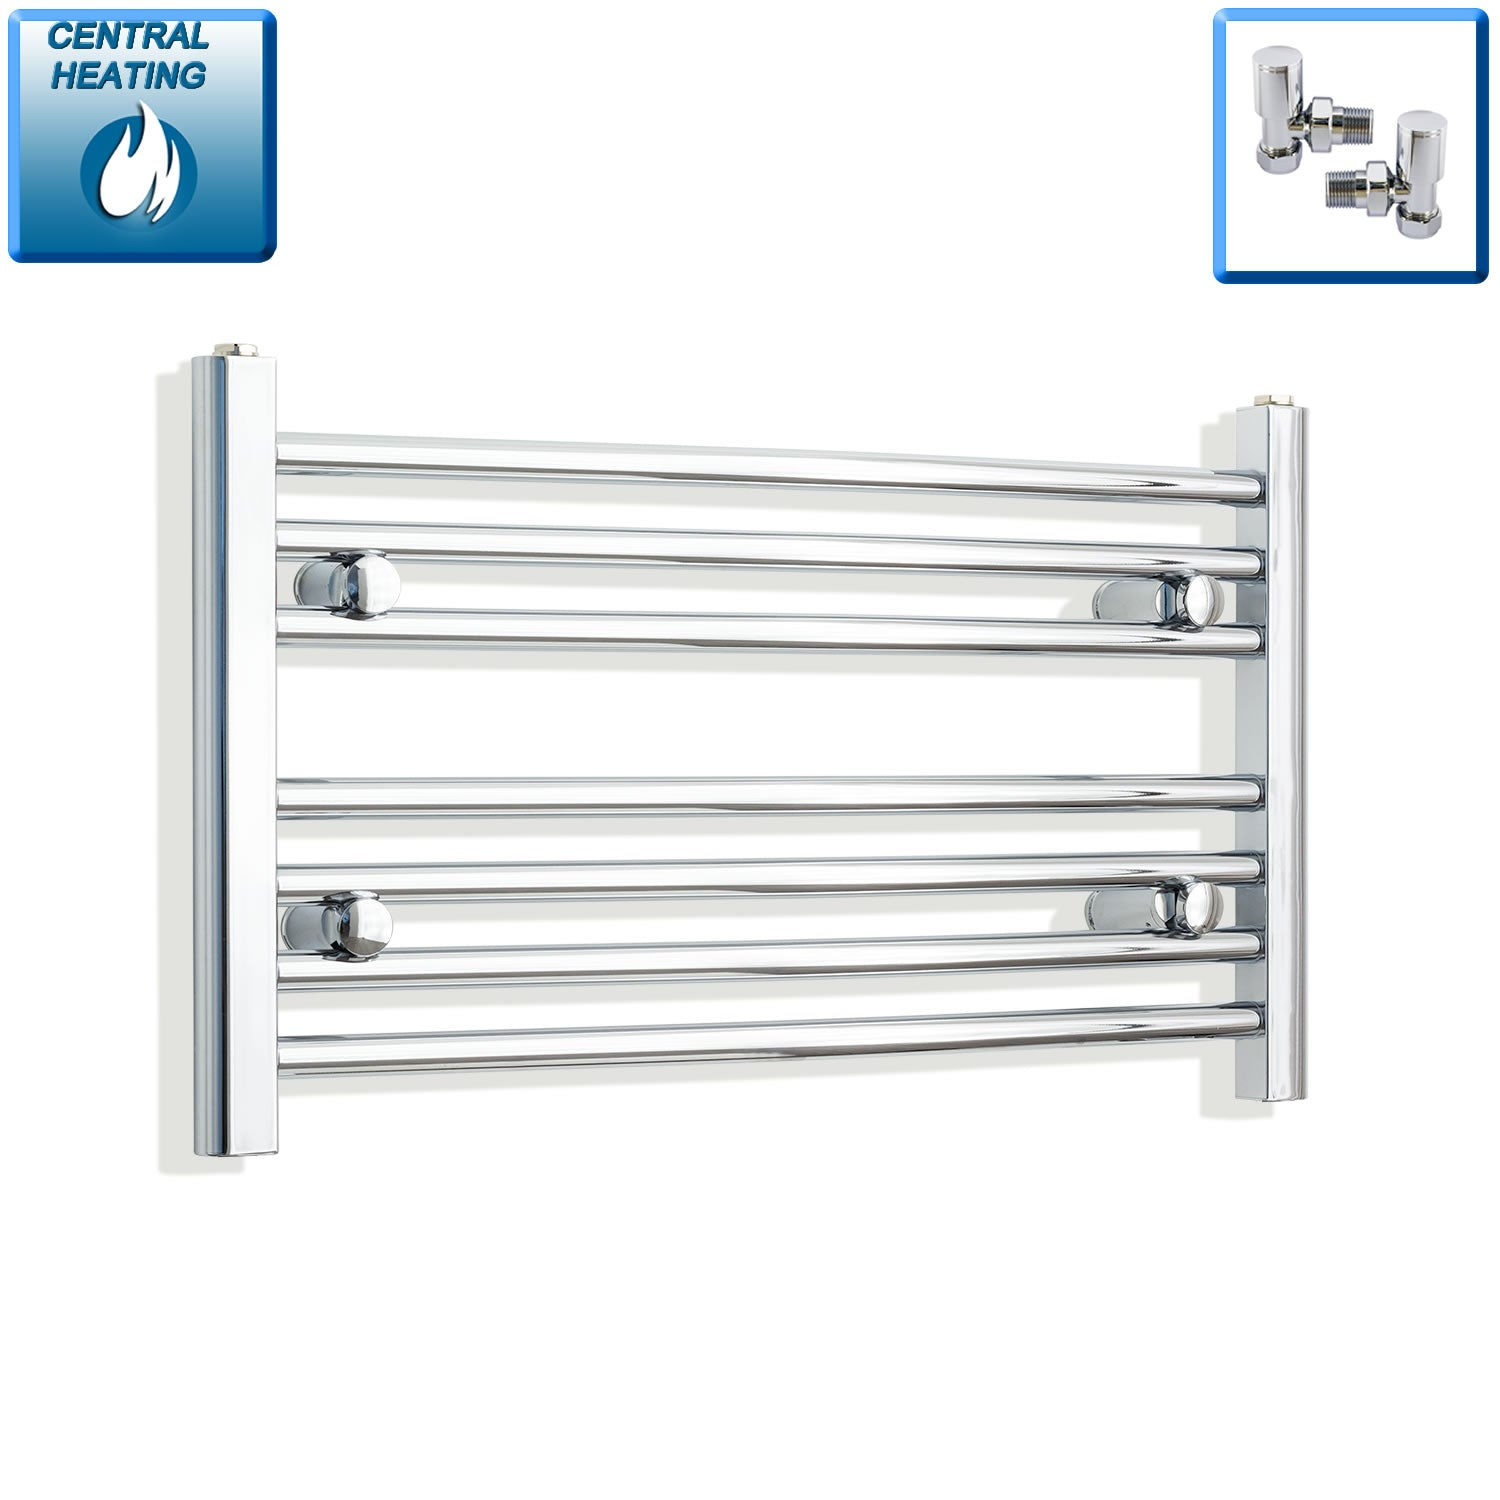 750mm x 400mm High Curved Chrome Towel Rail Radiator With Angled Valve